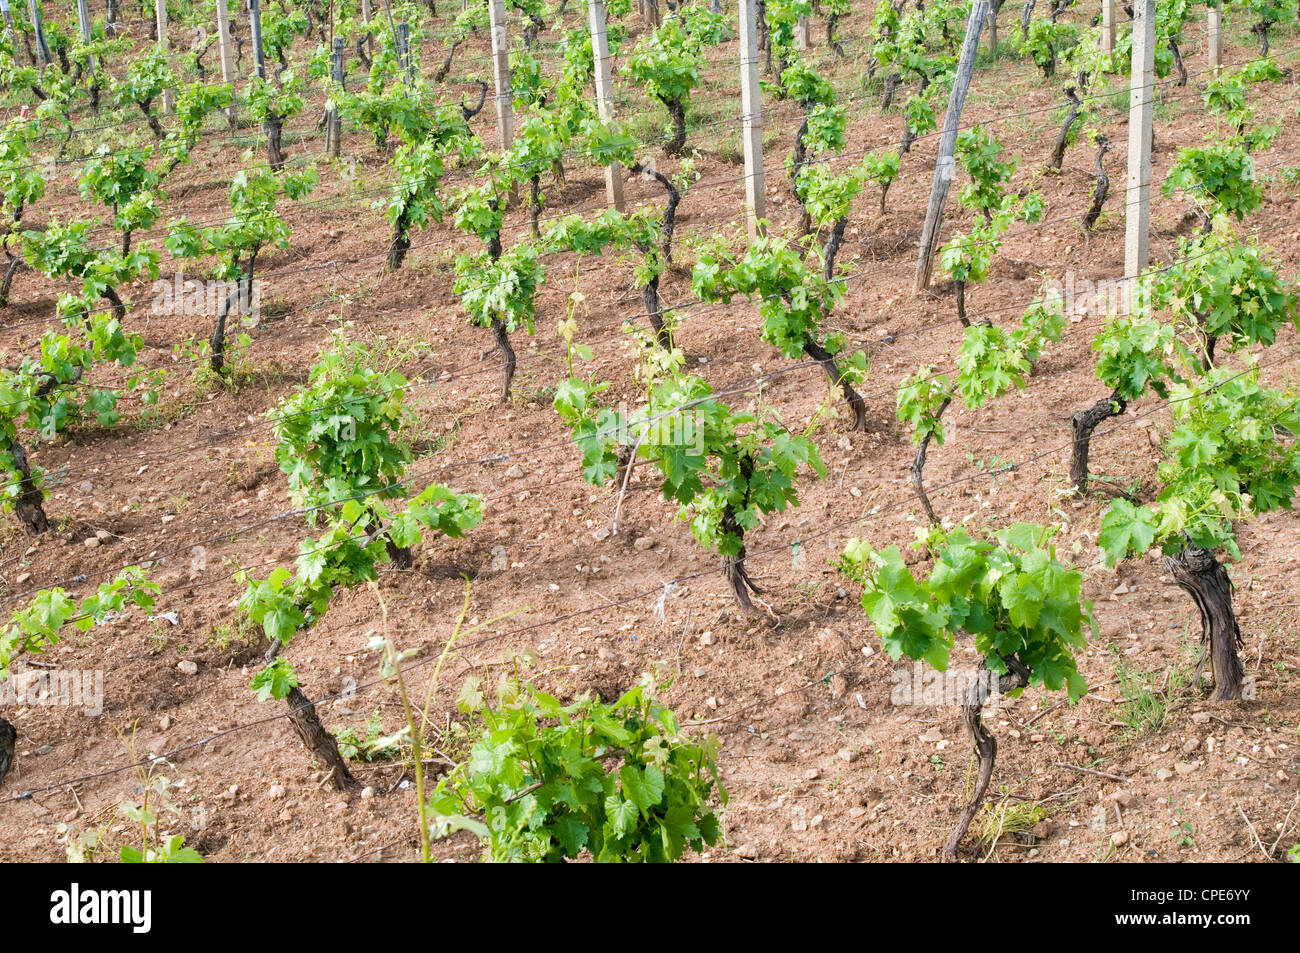 young vines in vineyard vineyards wine production grower growing immature grape grapes Stock Photo